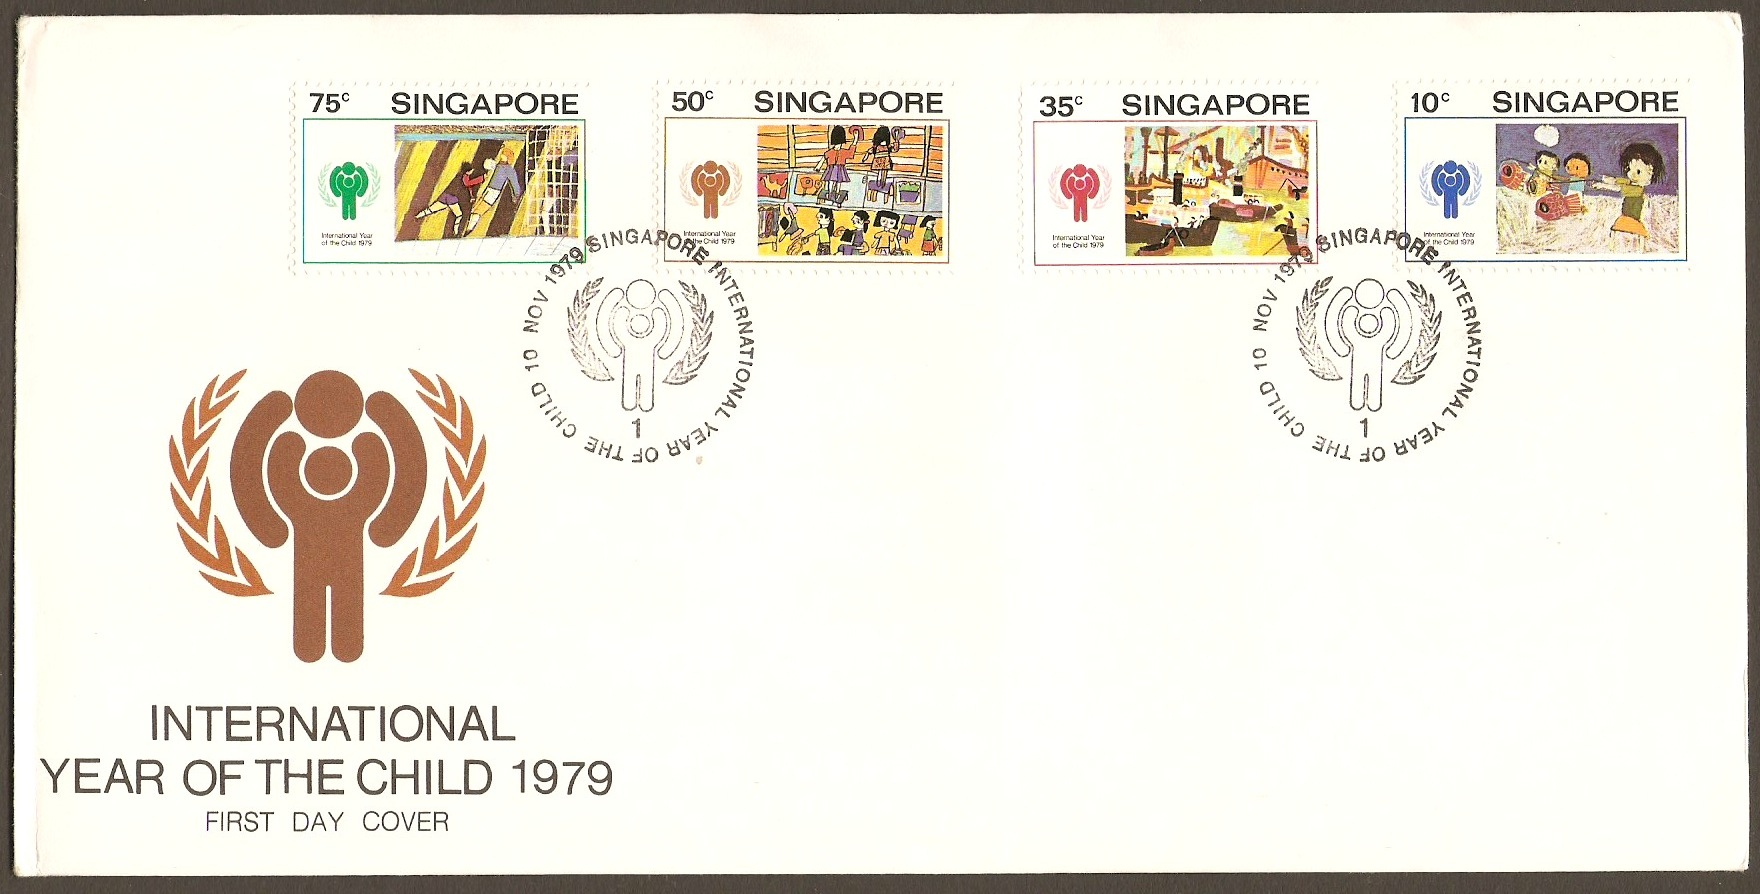 Singapore 1979 Year of the Child FDC.